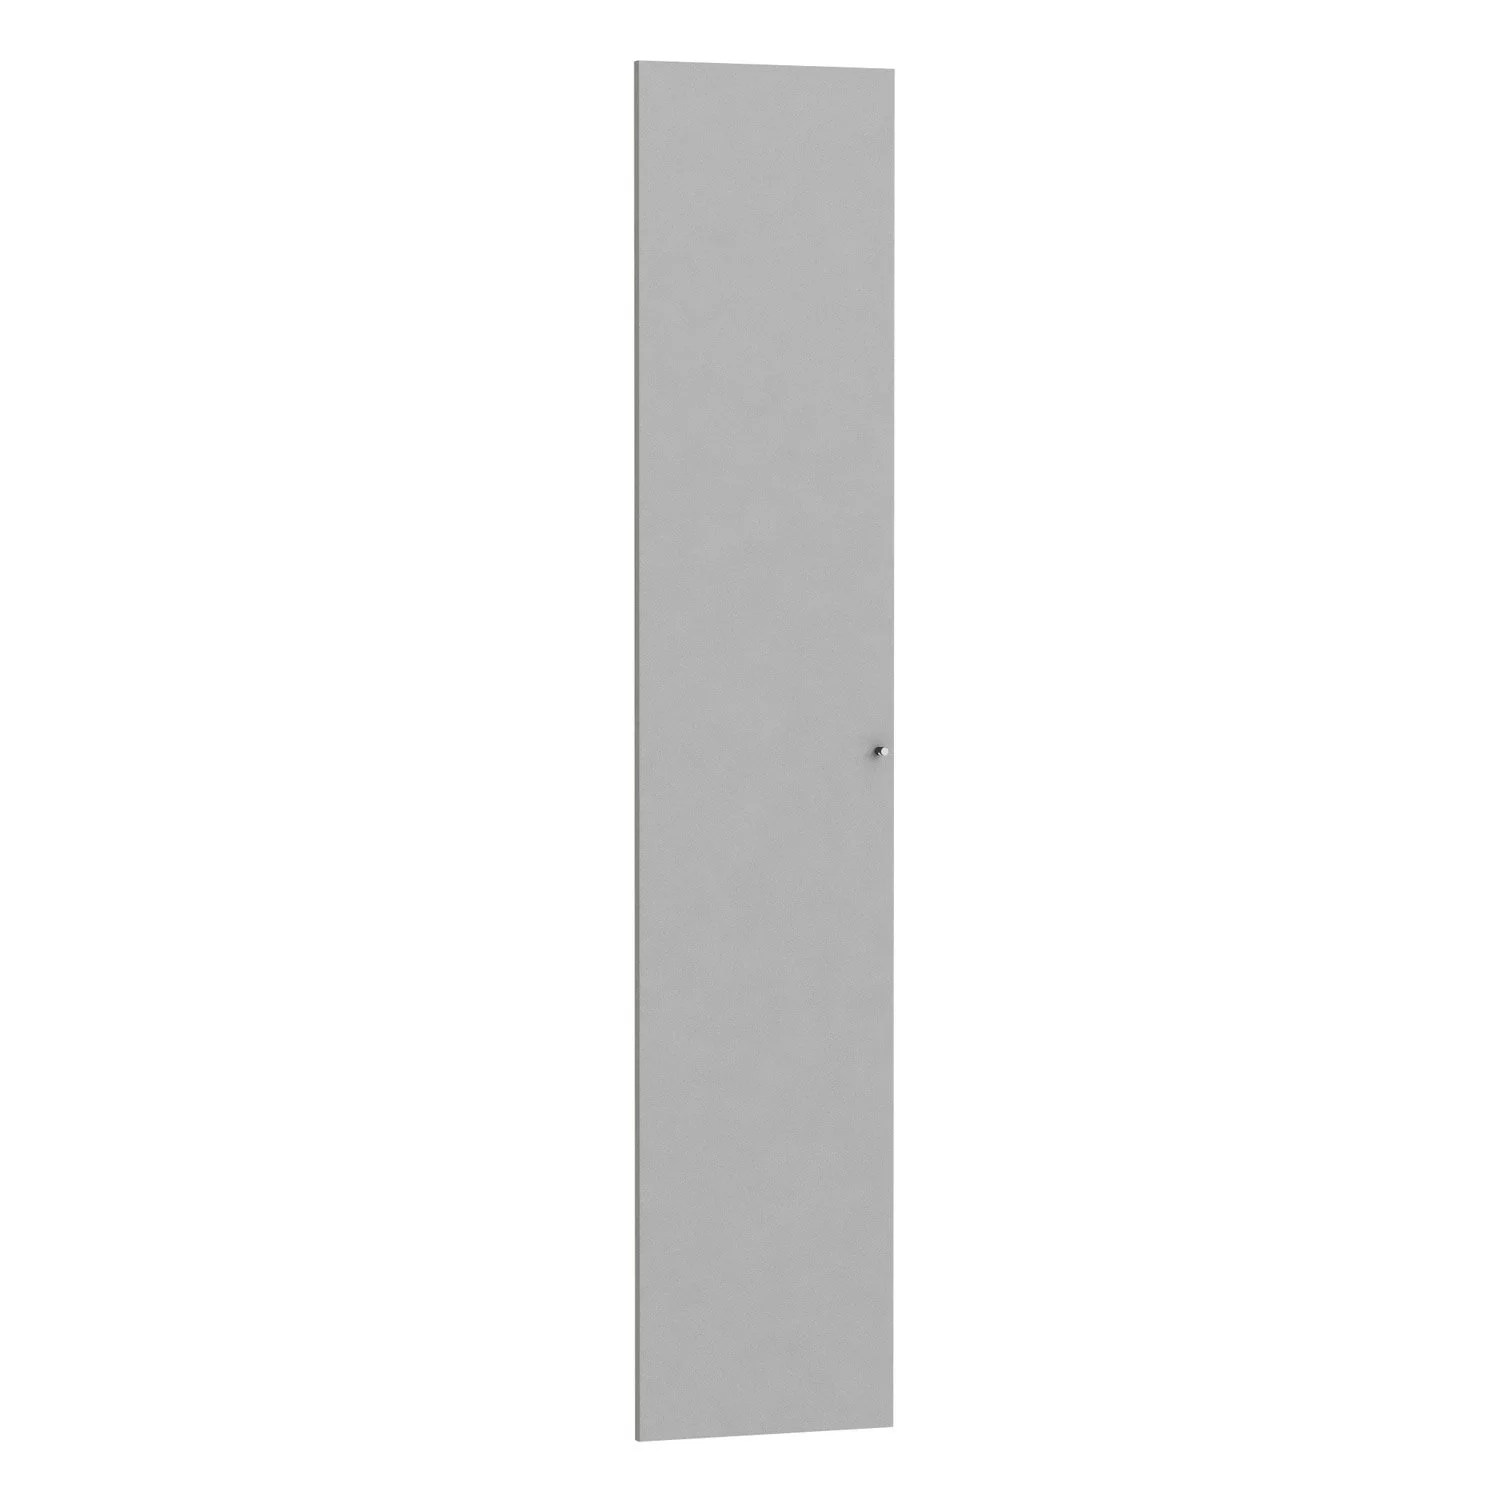 Porte De Placard 60 Cm De Large Porte Battante Spaceo Home 200 X 40 X 1 6 Cm Anthracite